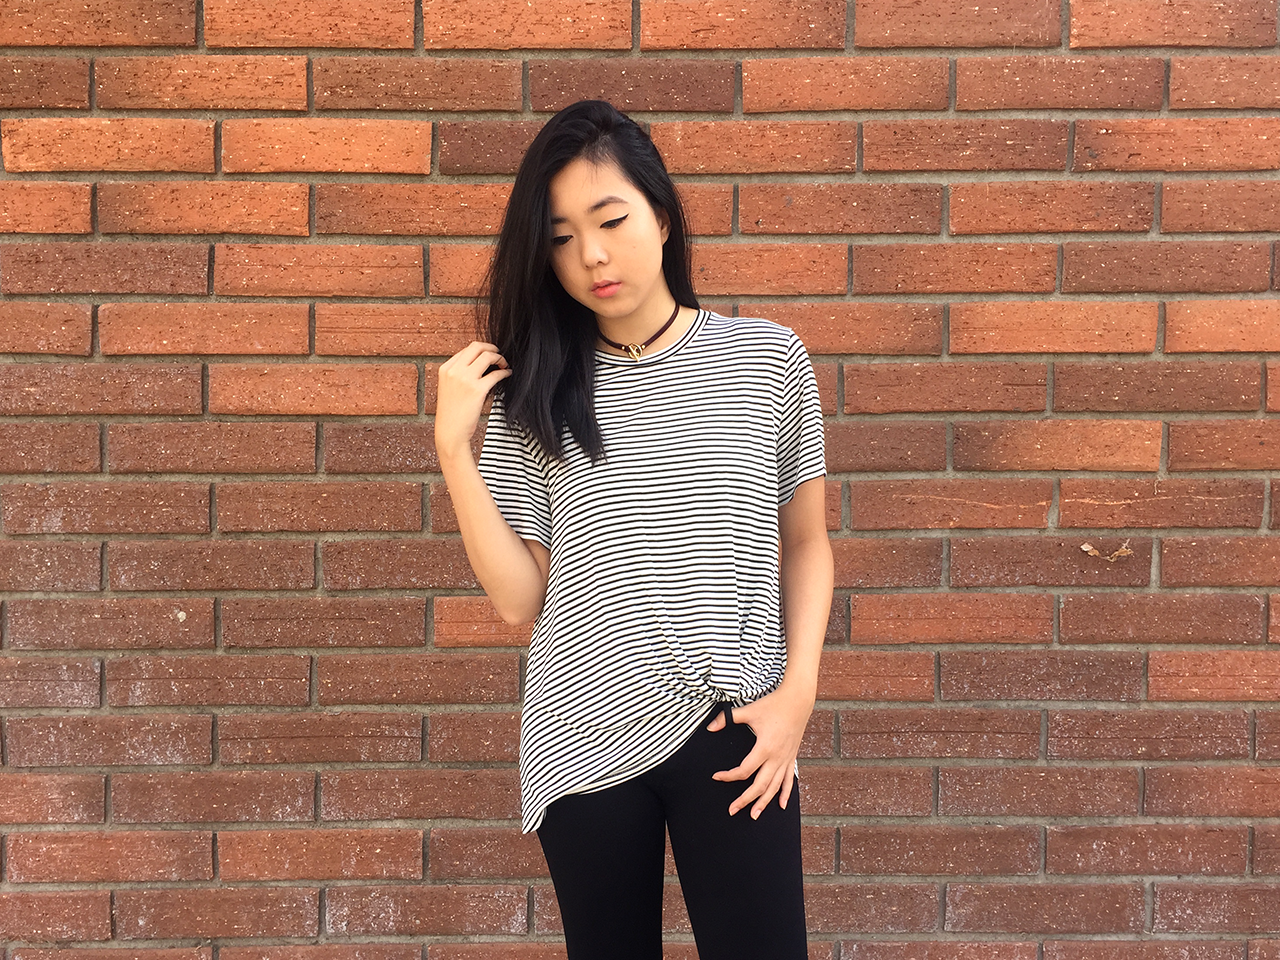 A+classic+stripe+tee+with+knot+detail,+super+soft+and+loose+fitted.+    Original:+$30.00    (In+photo:+Size+M+for+a+more+loose+fit+look.)    96%+Rayon  4%+Spandex    MADE+IN+USA